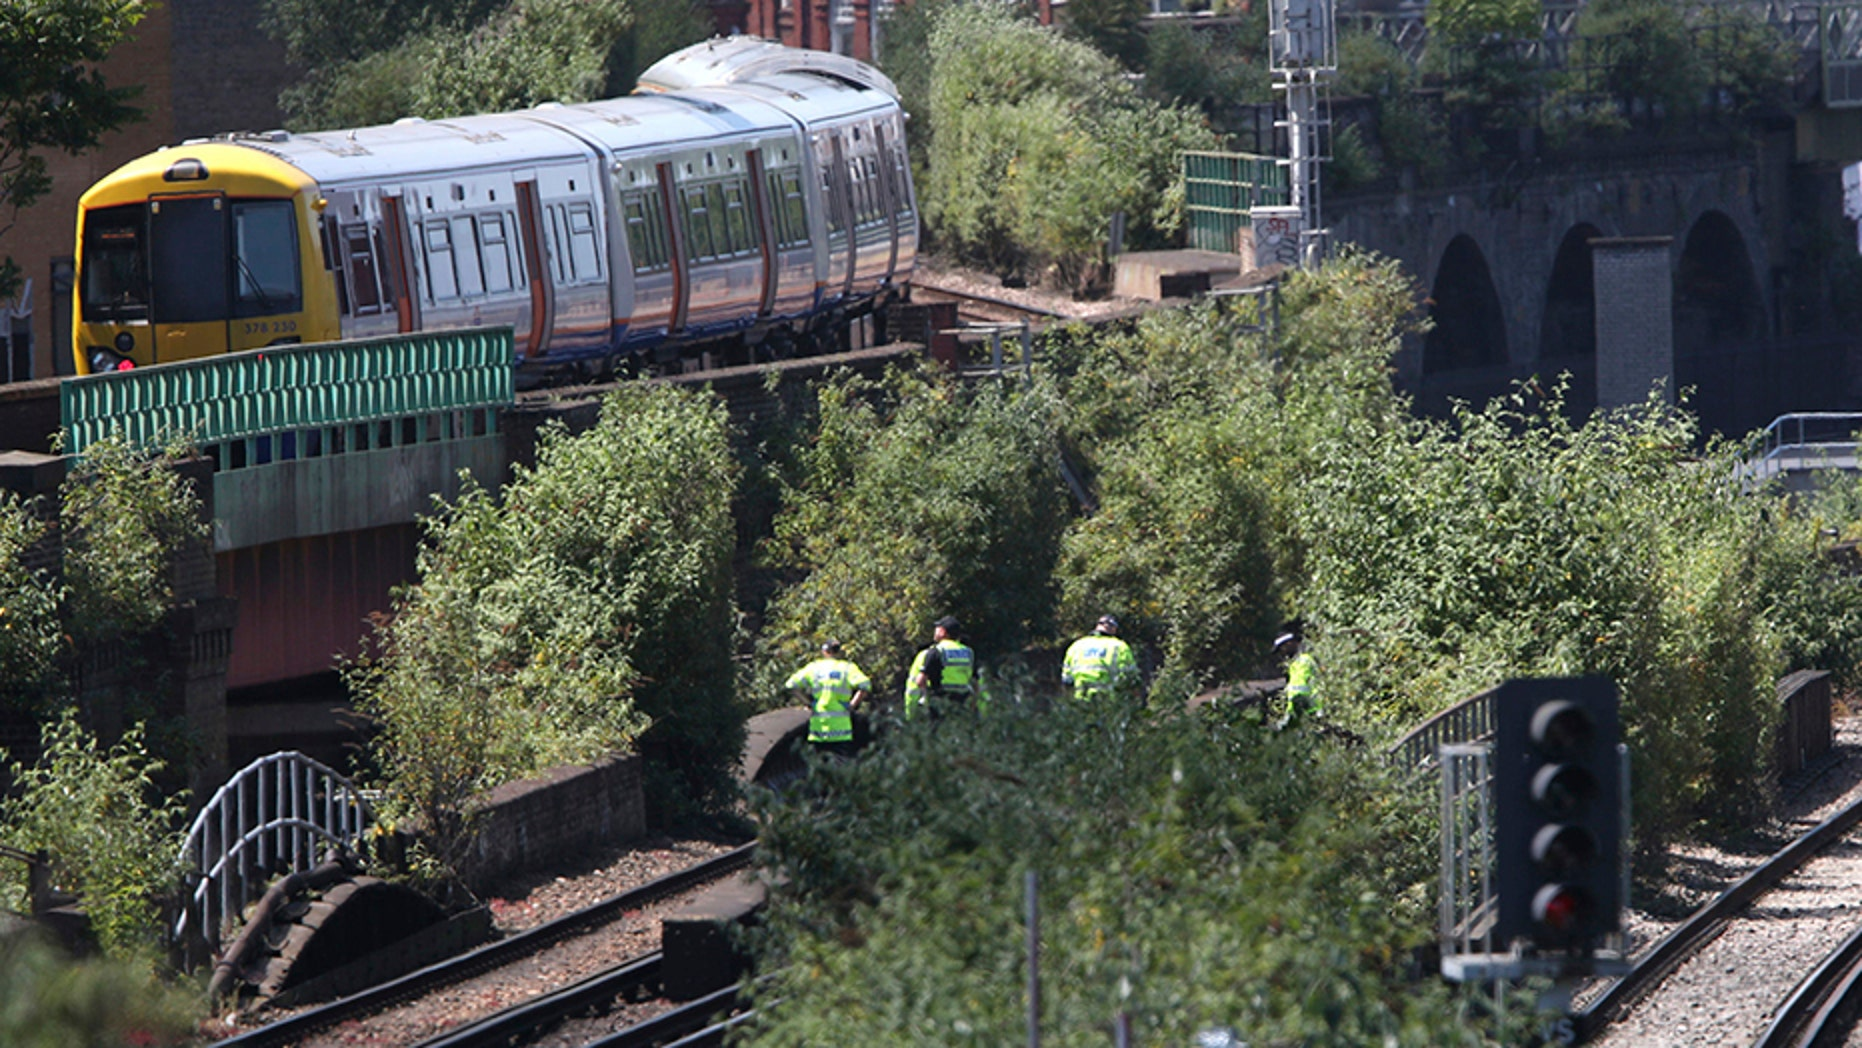 June 18, 2018: Police officers inspect a railway track near Loughborough Junction railway station, in south London.